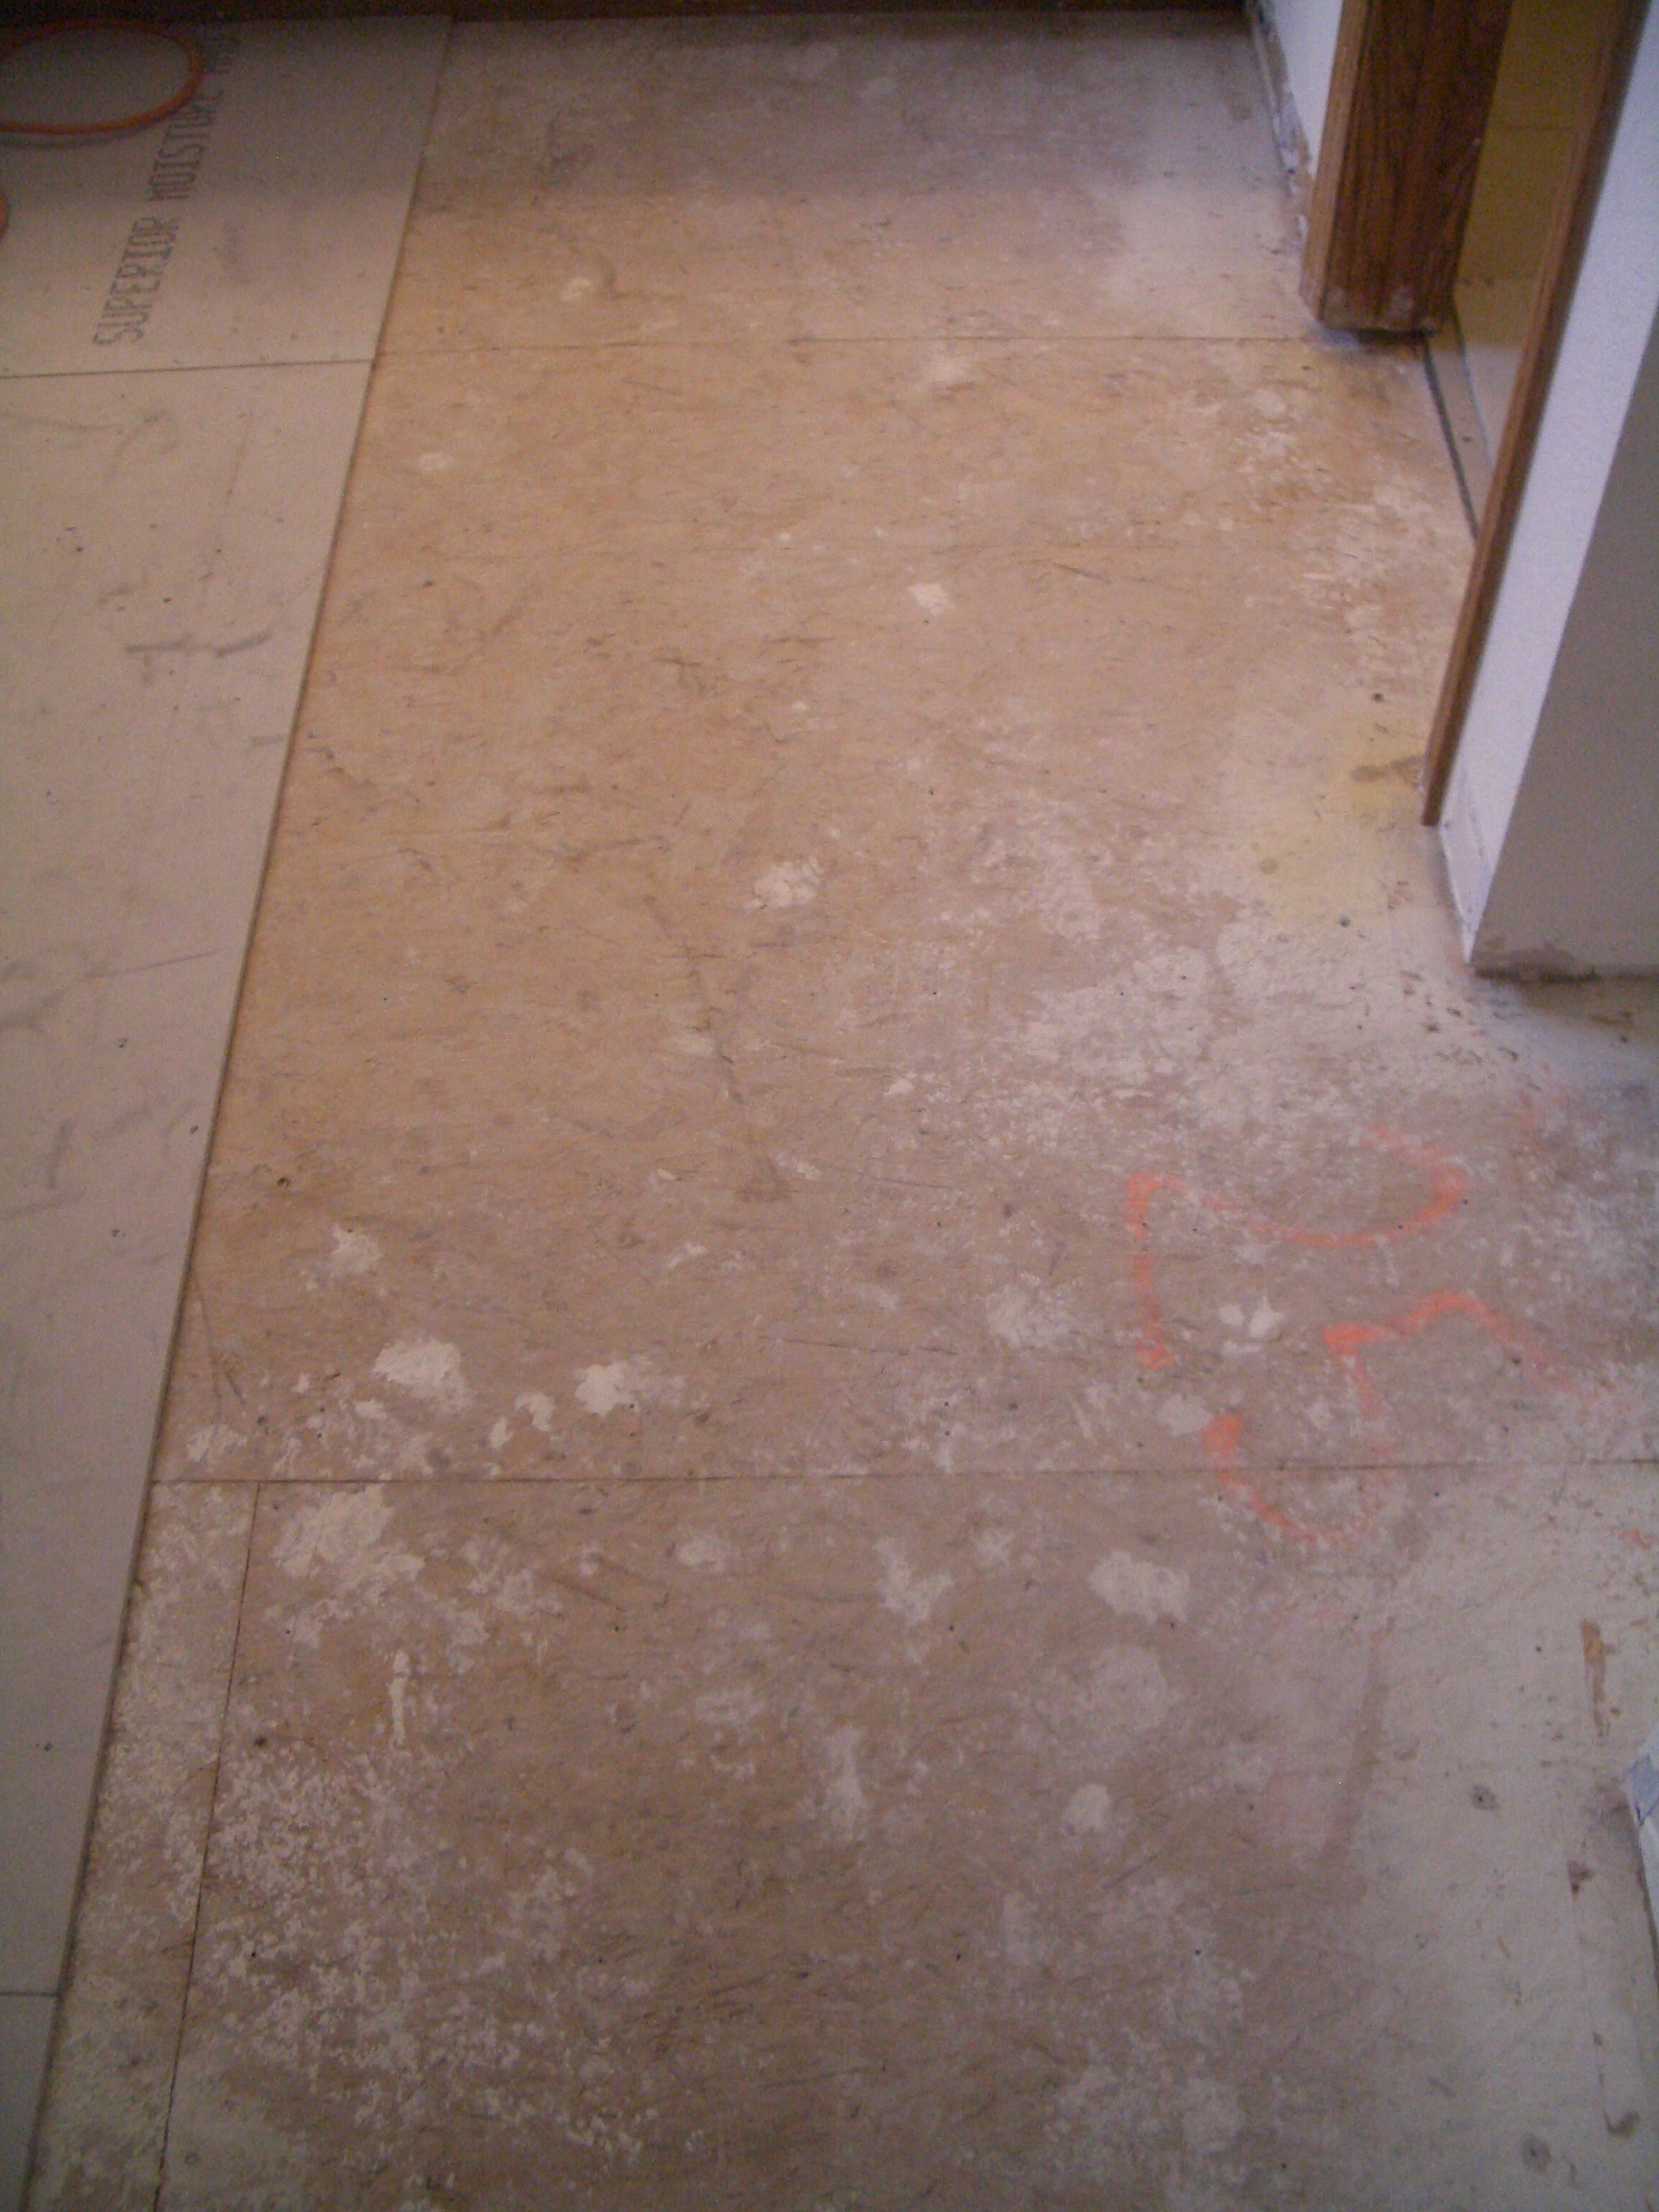 To install cement backerboard for floor tile dry fitting backerboard on floor dailygadgetfo Images